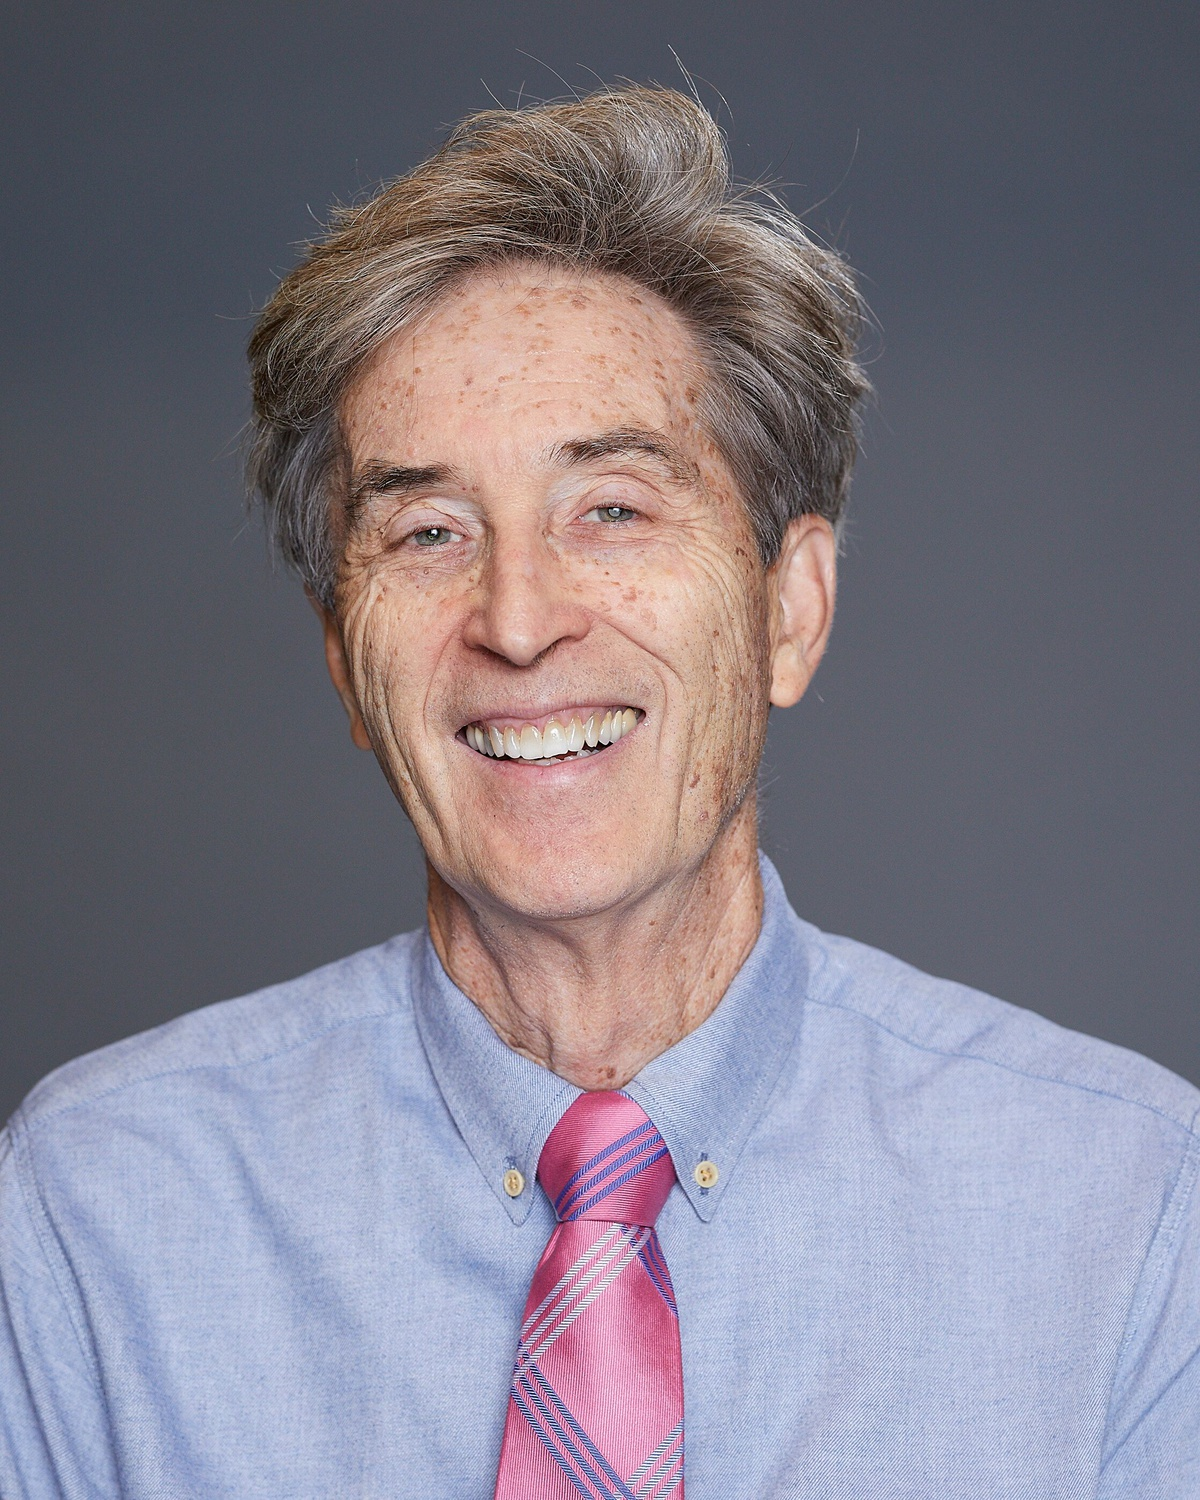 Professor David Hemenway serves as the director of the Harvard Injury Control Research Center.